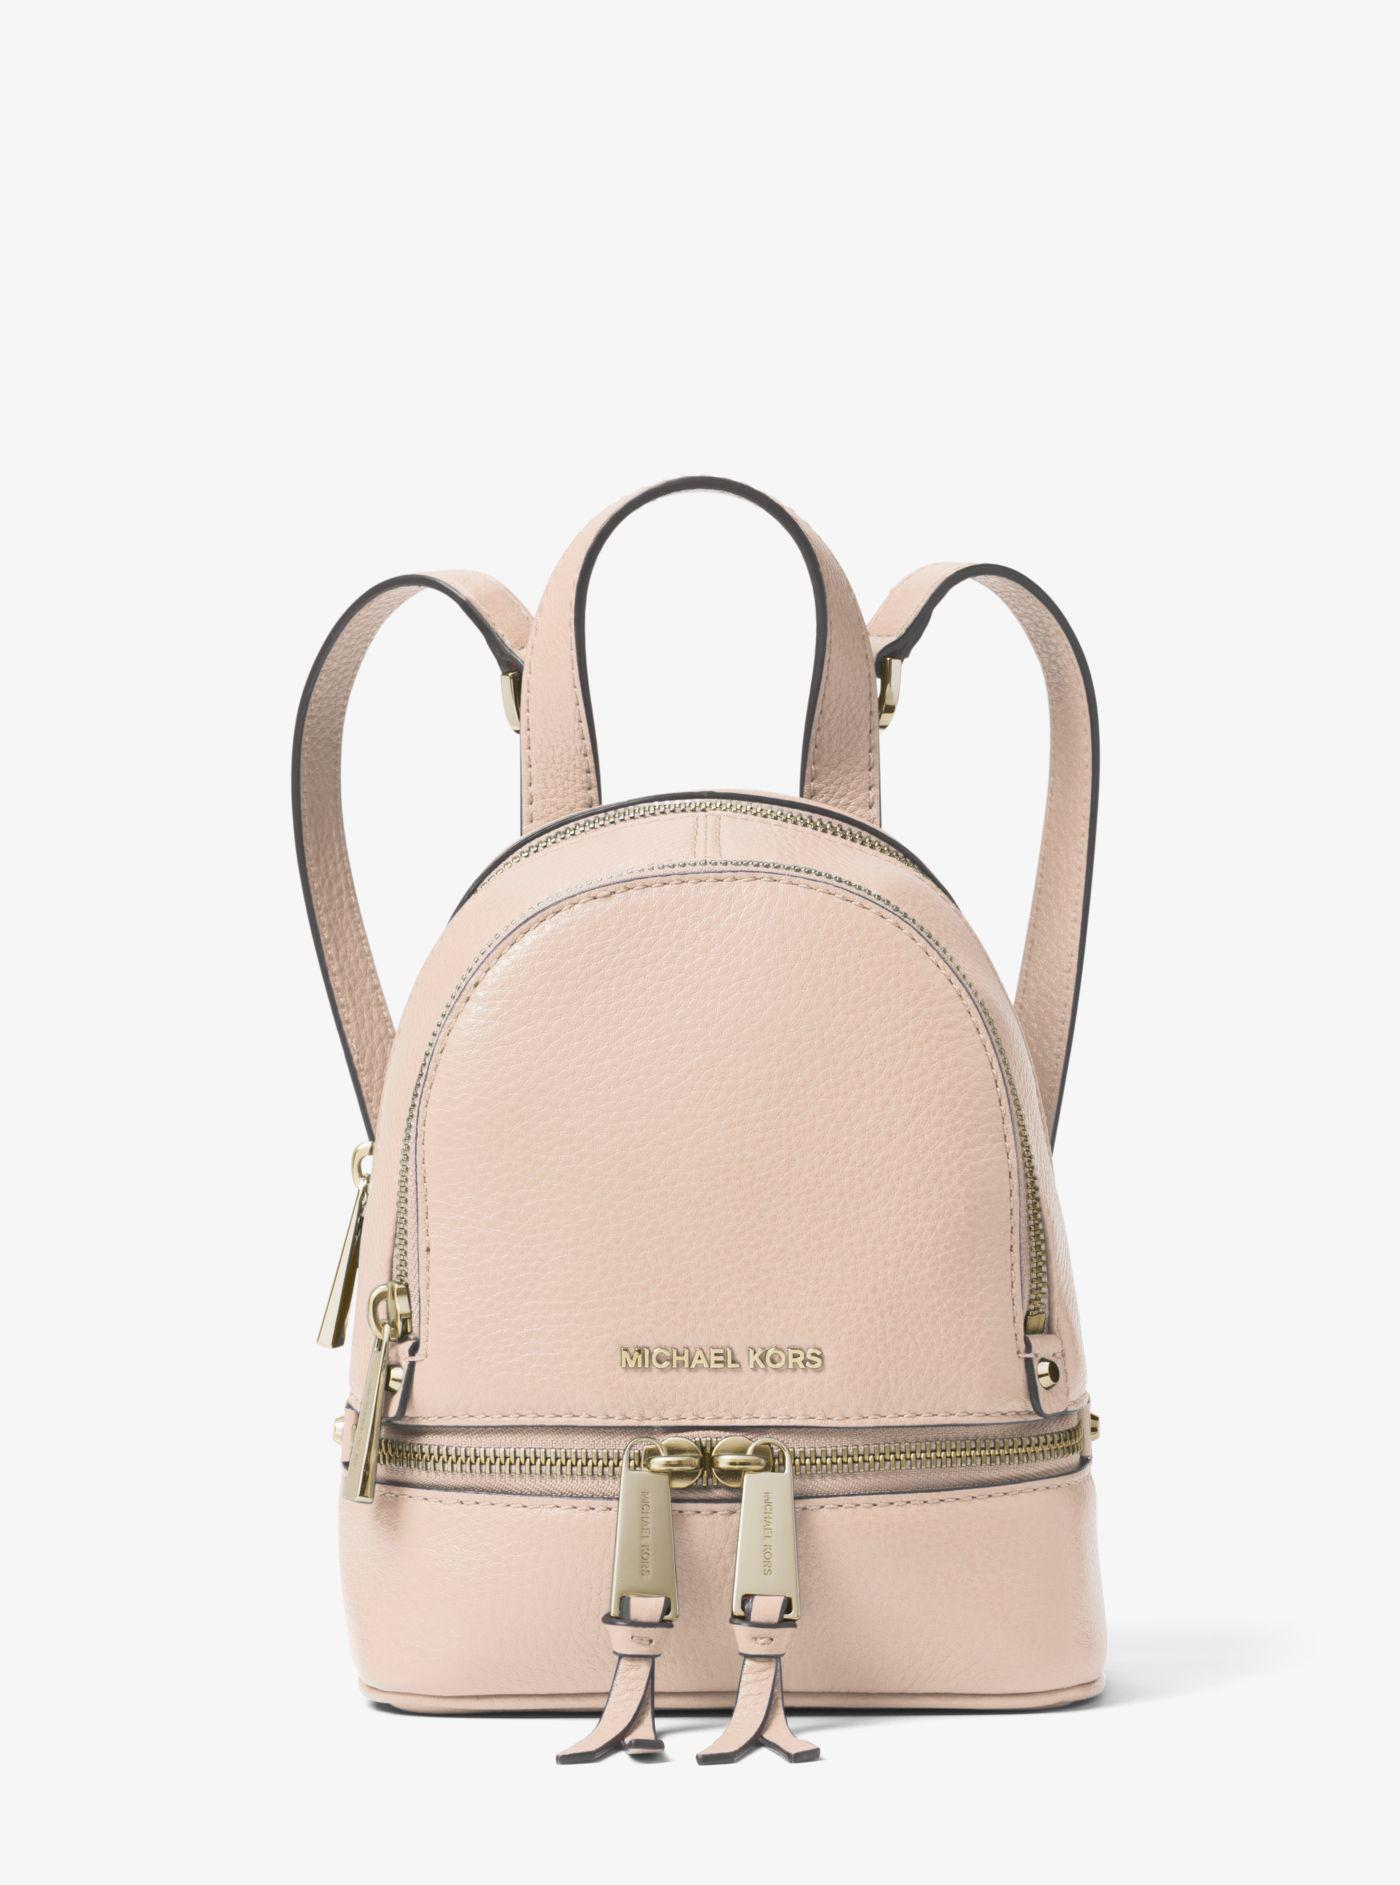 Michael Kors - Pink Rhea Mini Leather Backpack - Lyst. View fullscreen 201421f464